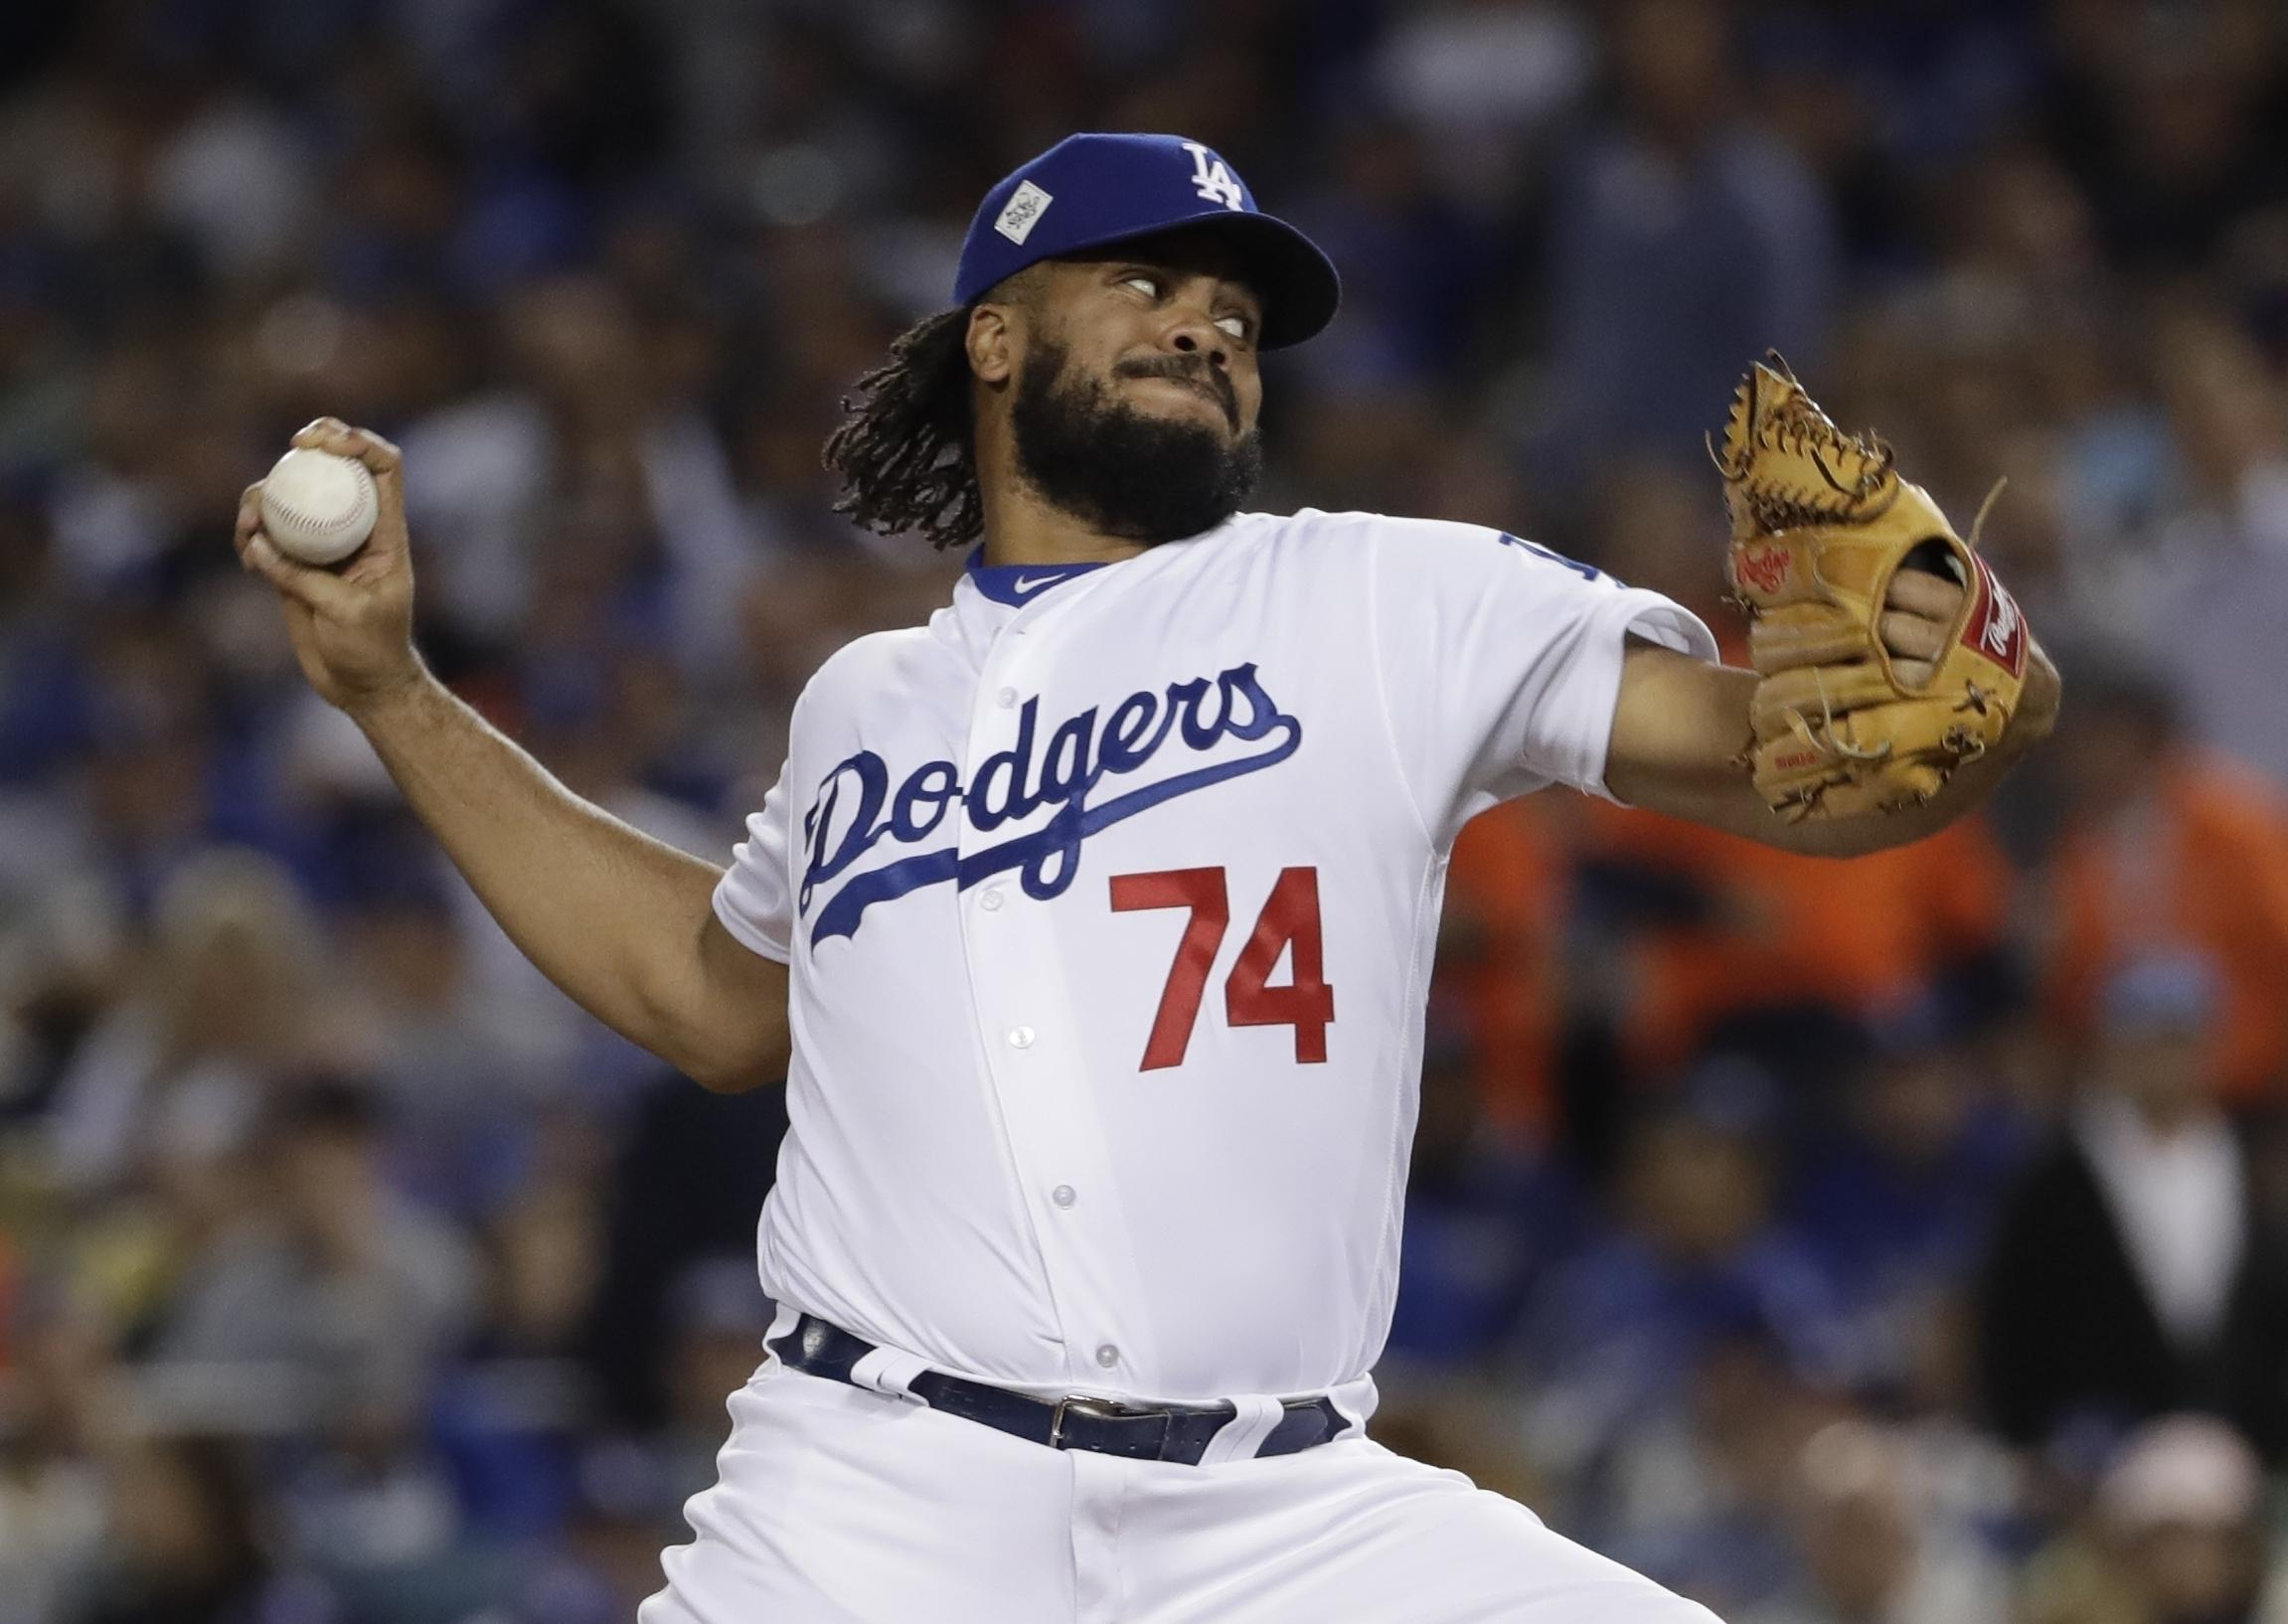 Dodgers look to take last step to elusive World Series title